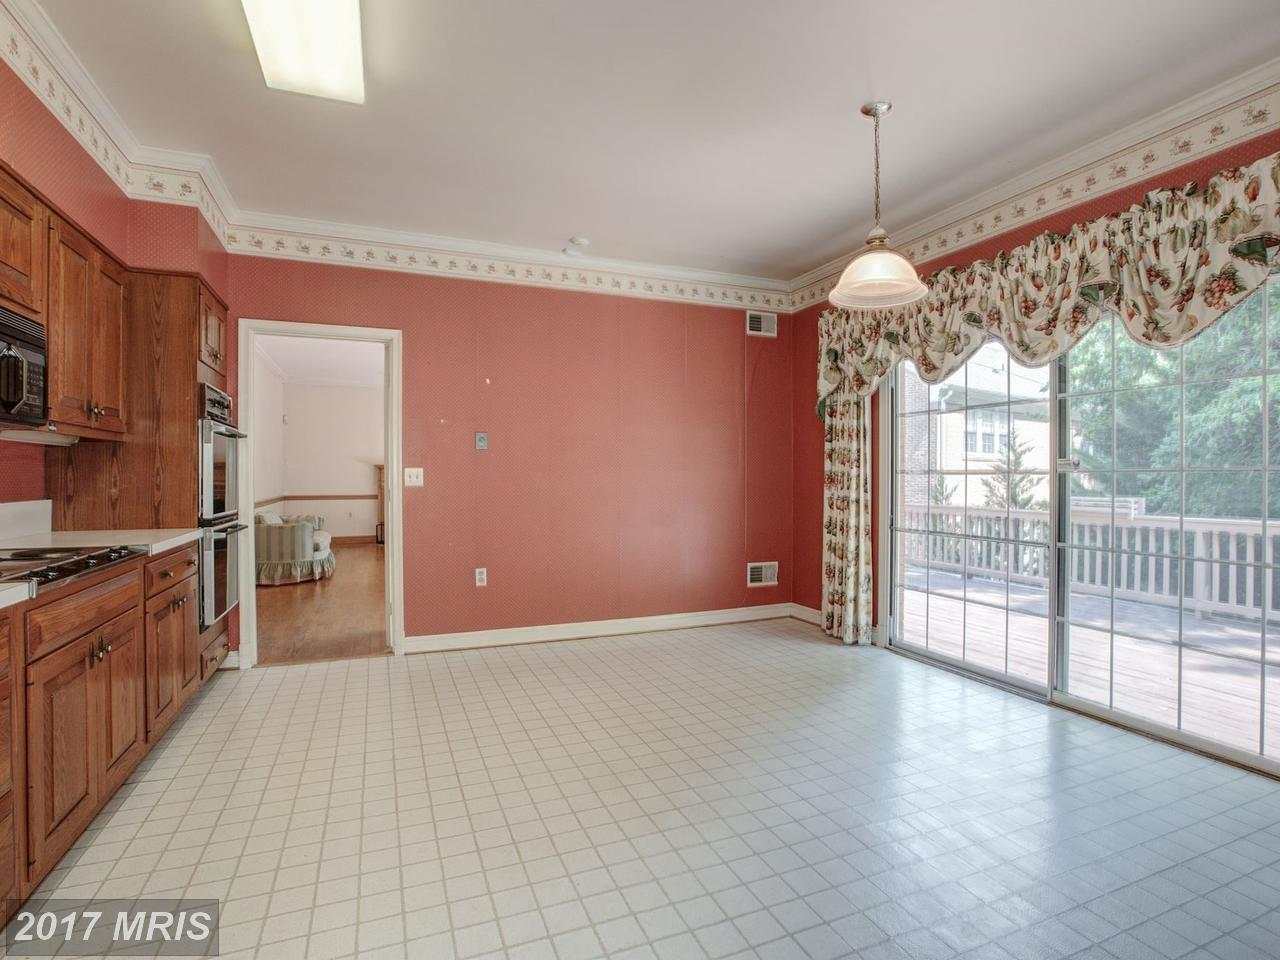 Additional photo for property listing at Colonial, Detached - WASHINGTON, DC 5149 YUMA ST NW Washington, Distrito De Columbia,20016 Estados Unidos